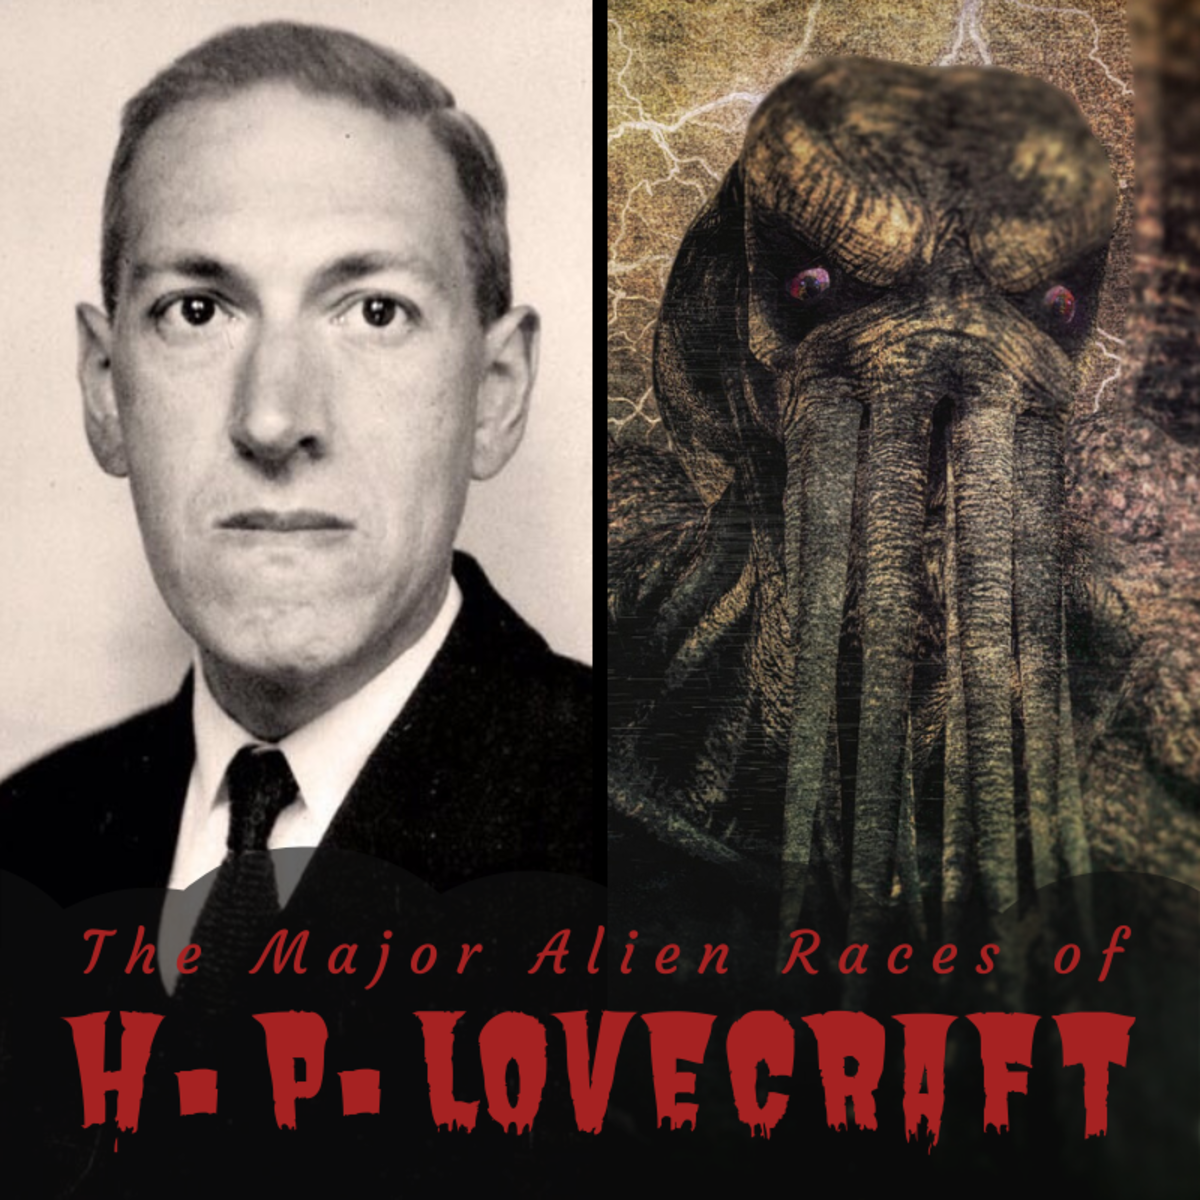 H.P. Lovecraft is known the world over for giving birth to some of the most surreally horrifying creatures in fiction. Learn about some of them here.